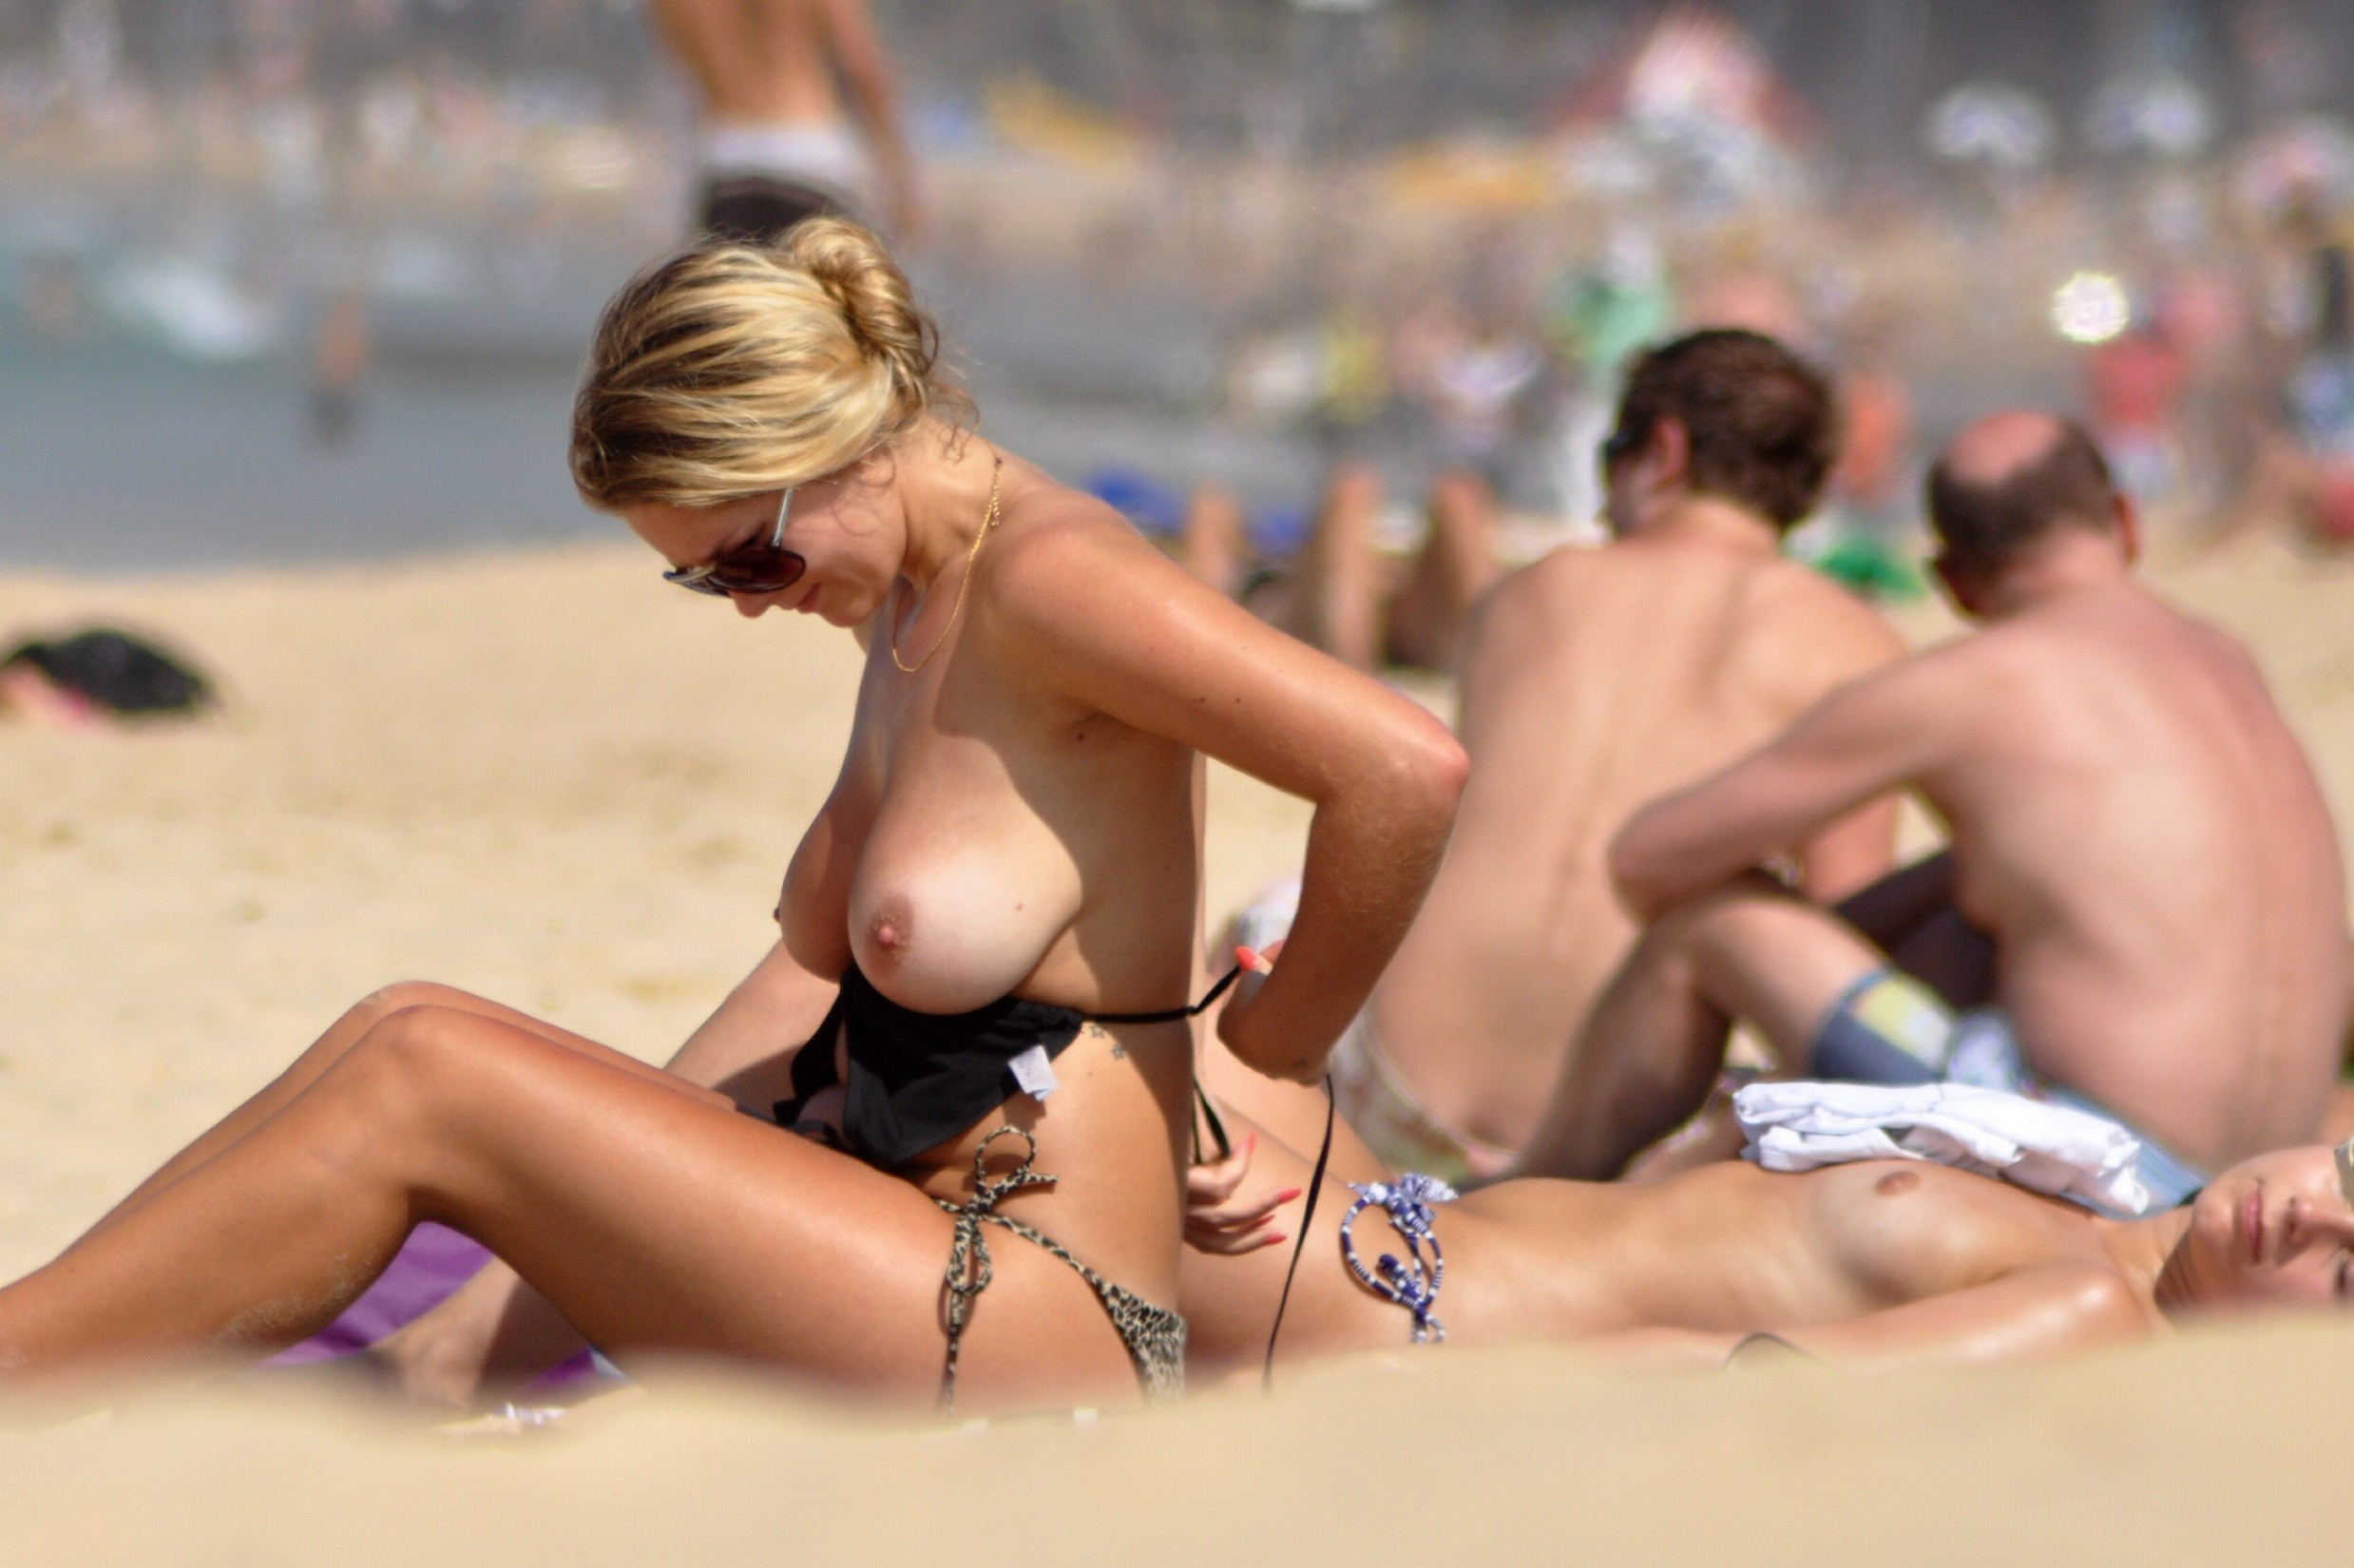 nudists-girls-boobs-beach-topless-mix-vol7-94